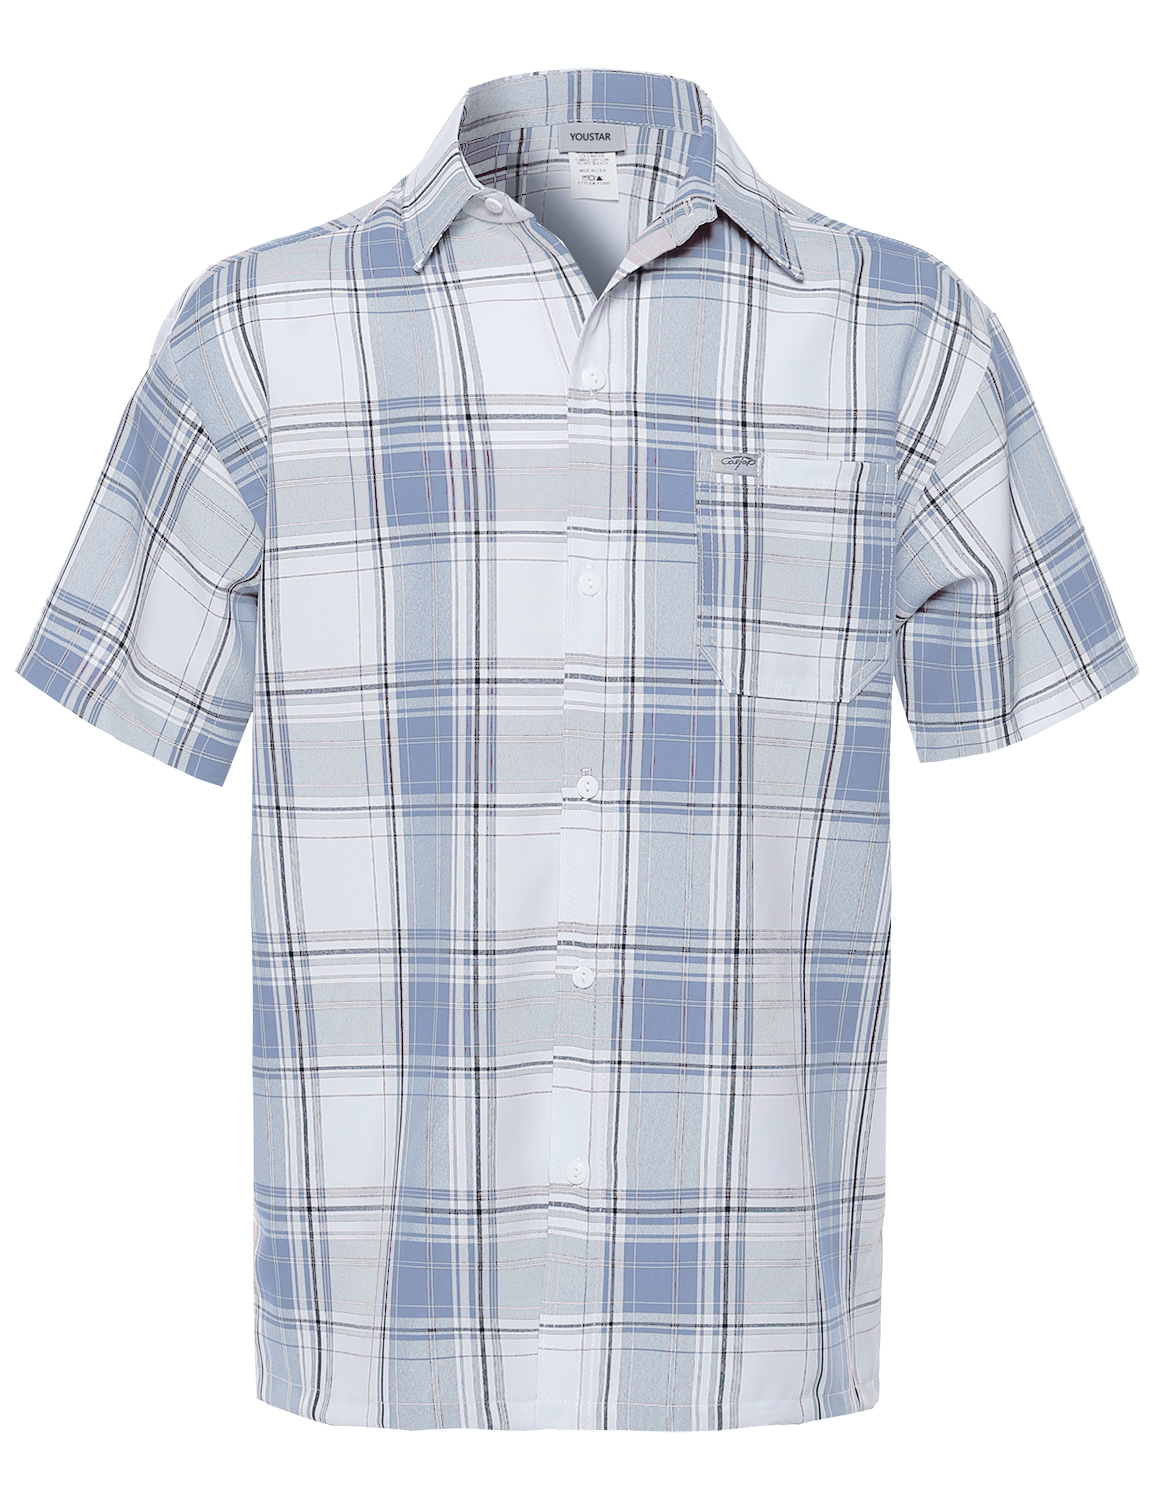 Fashionoutfit men 39 s loose fit plaid checkered short sleeve for White short sleeve button down shirts for men